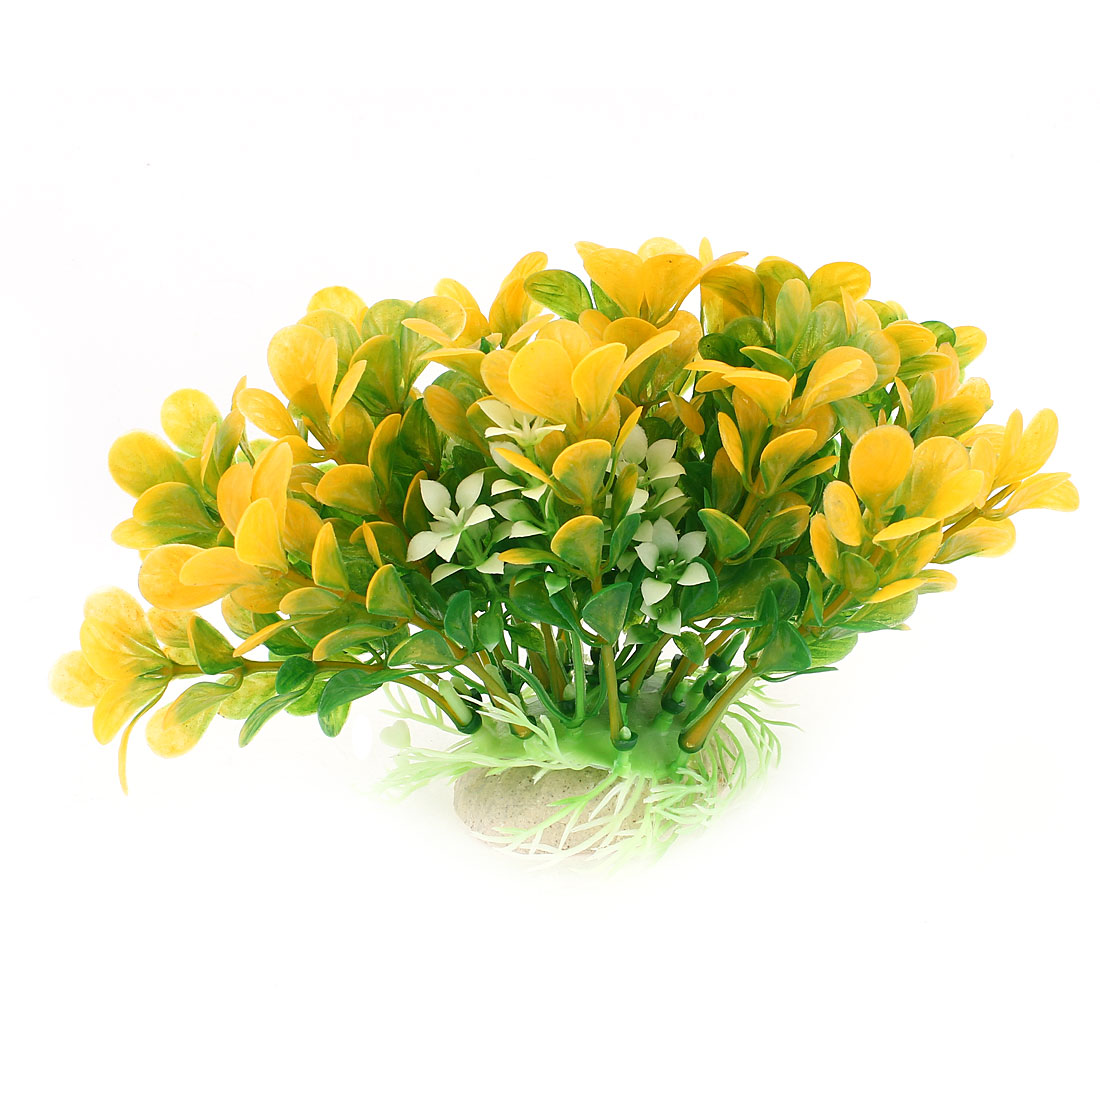 "4"" High Green Yellow Plastic Artificial Underwater Grass Accent for Aquarium"